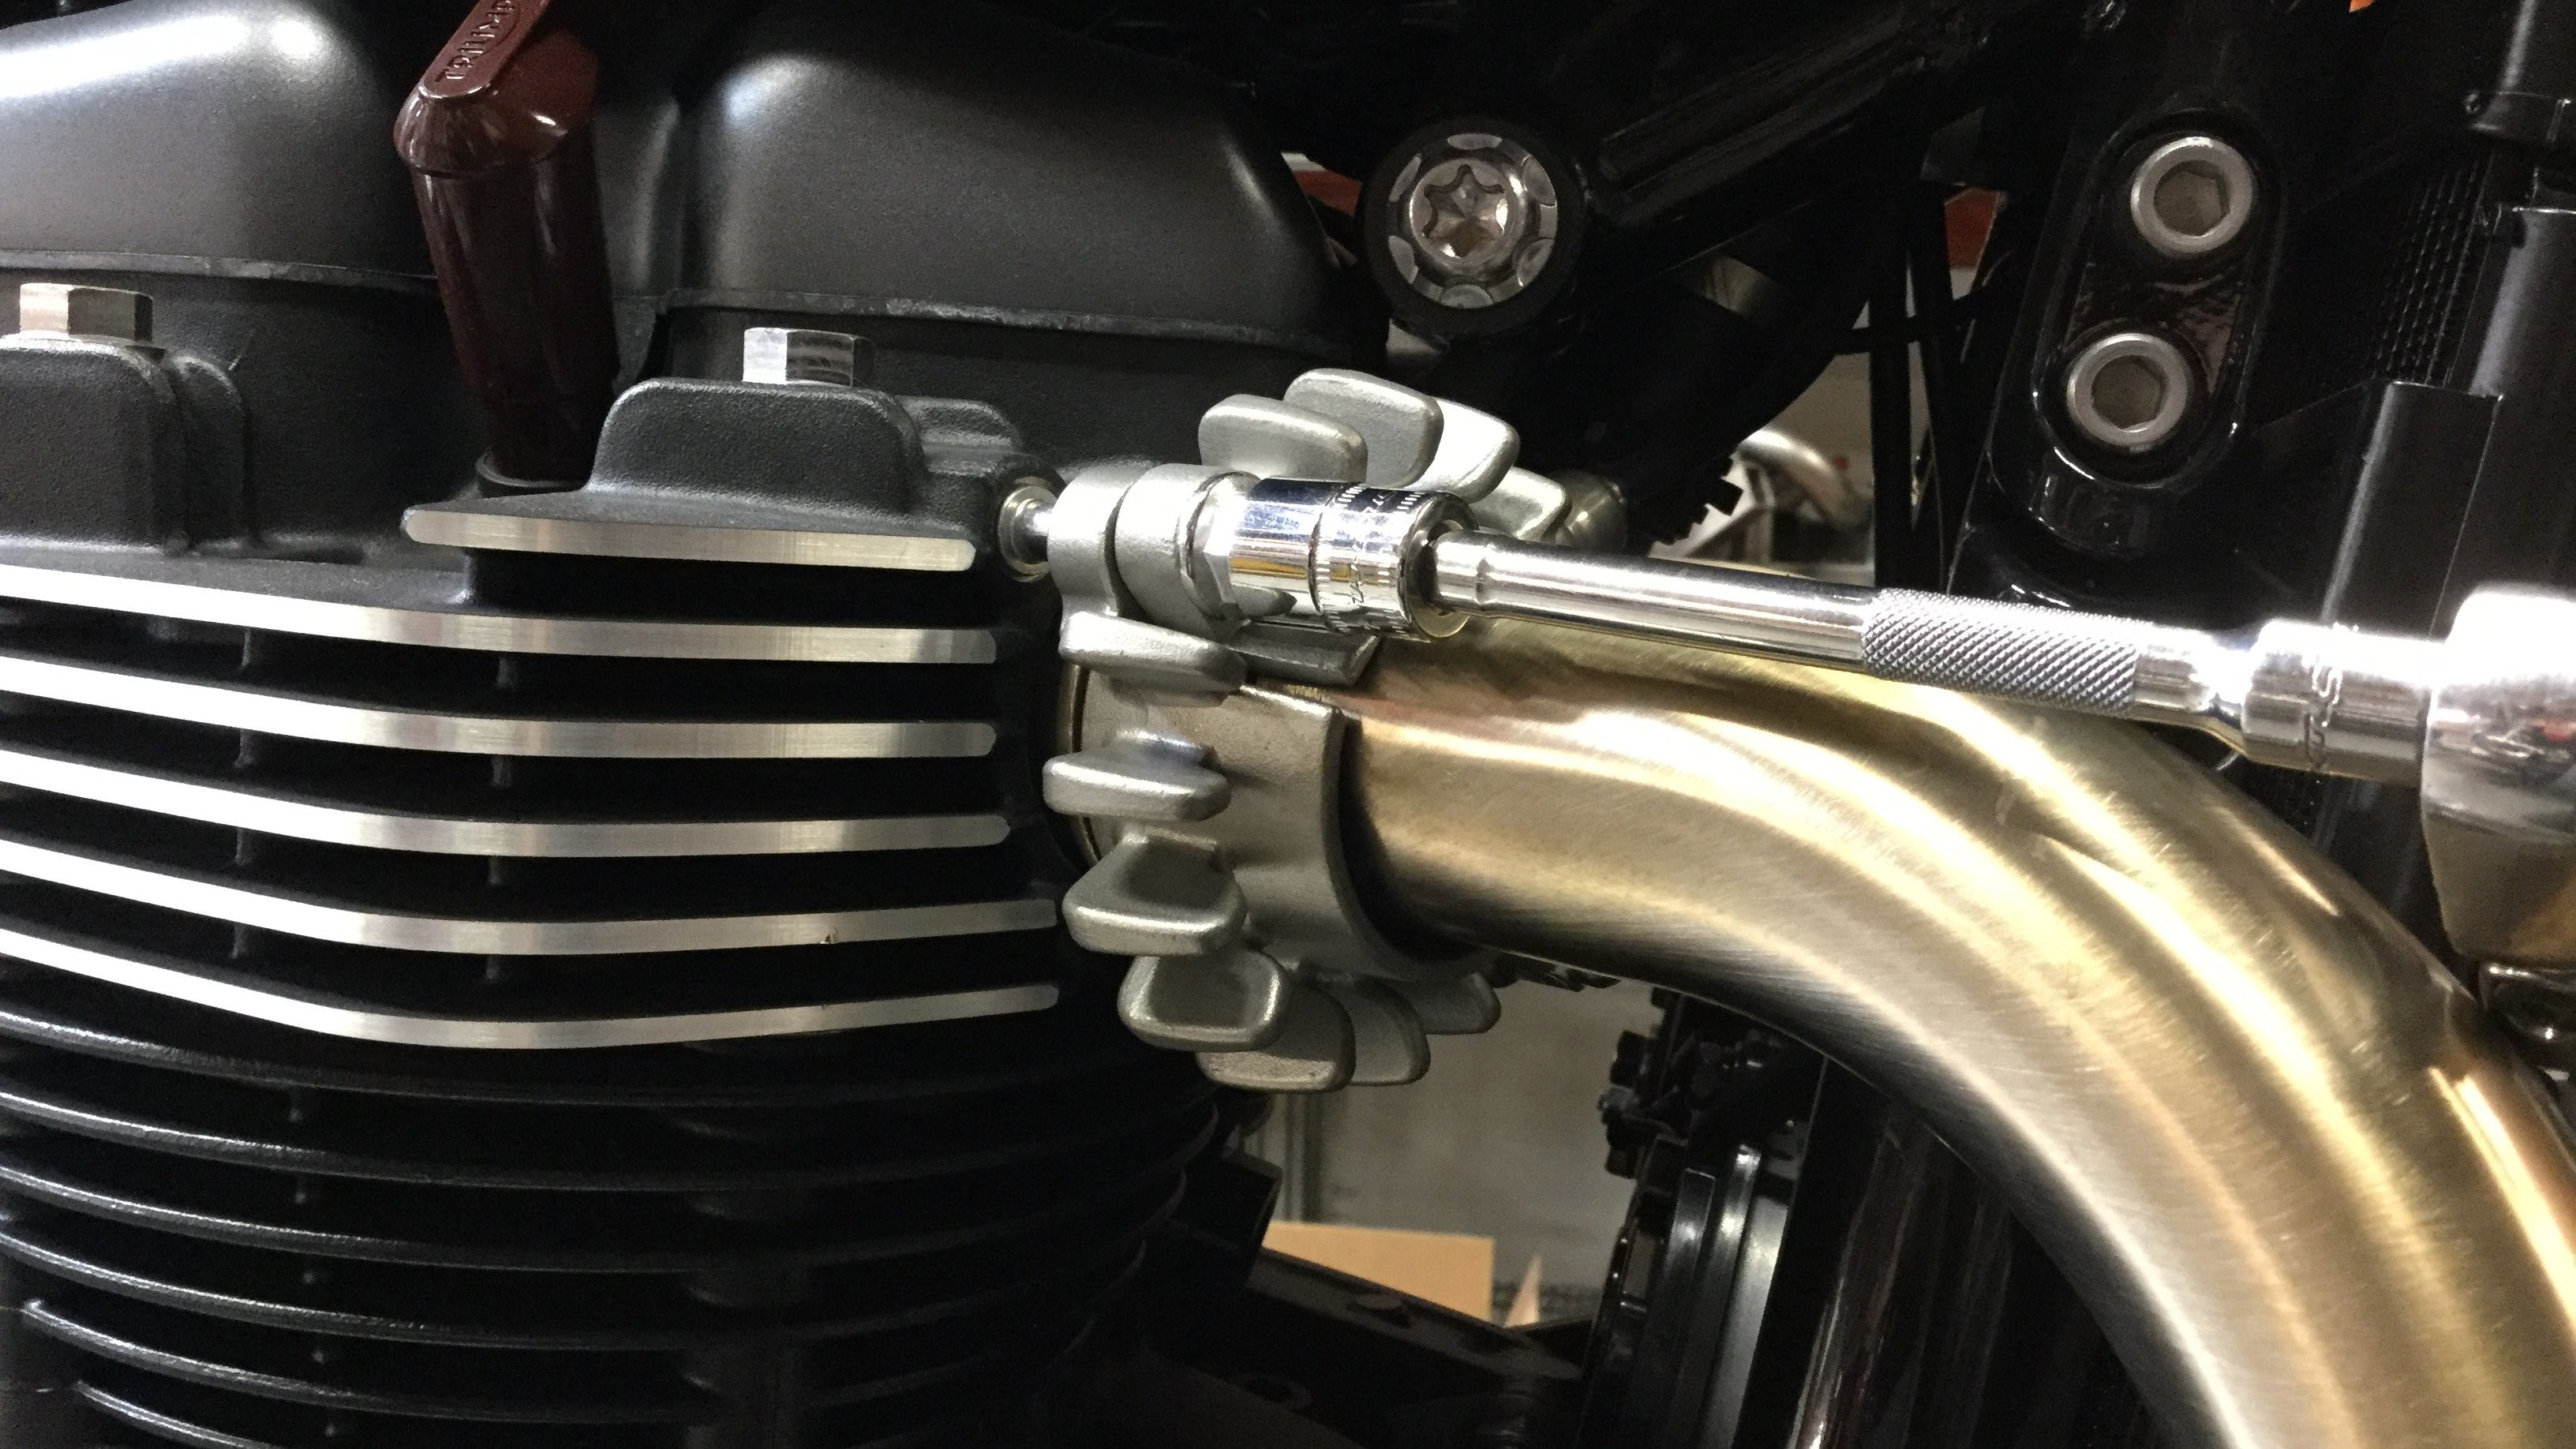 British Customs Sleeper Install on Triumph Bobber